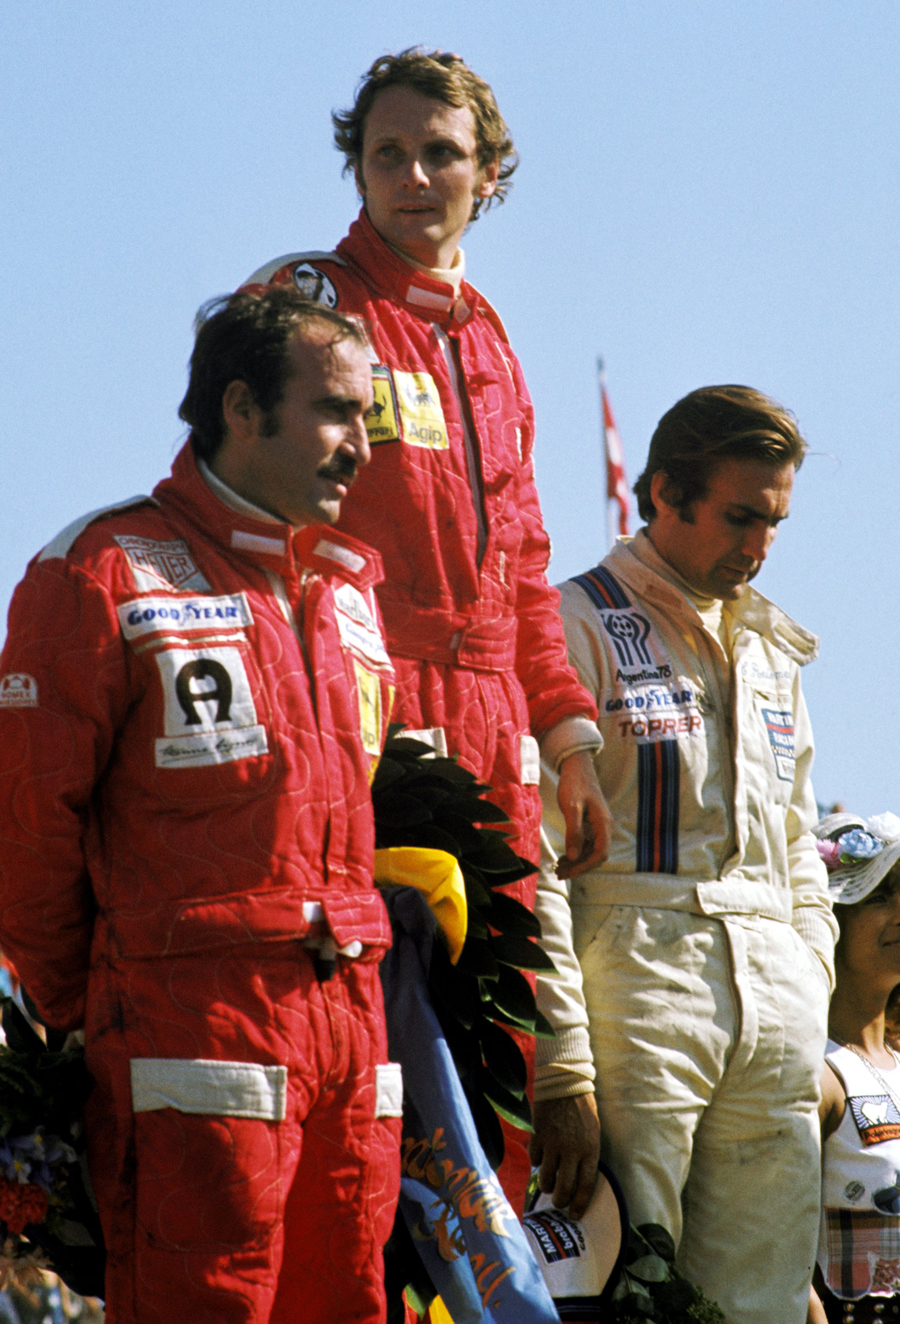 The podium at the Swedish Grand Prix - Clay Regazzoni, who finished third, race winner Niki Lauda and second-placed Carlos Reutemann